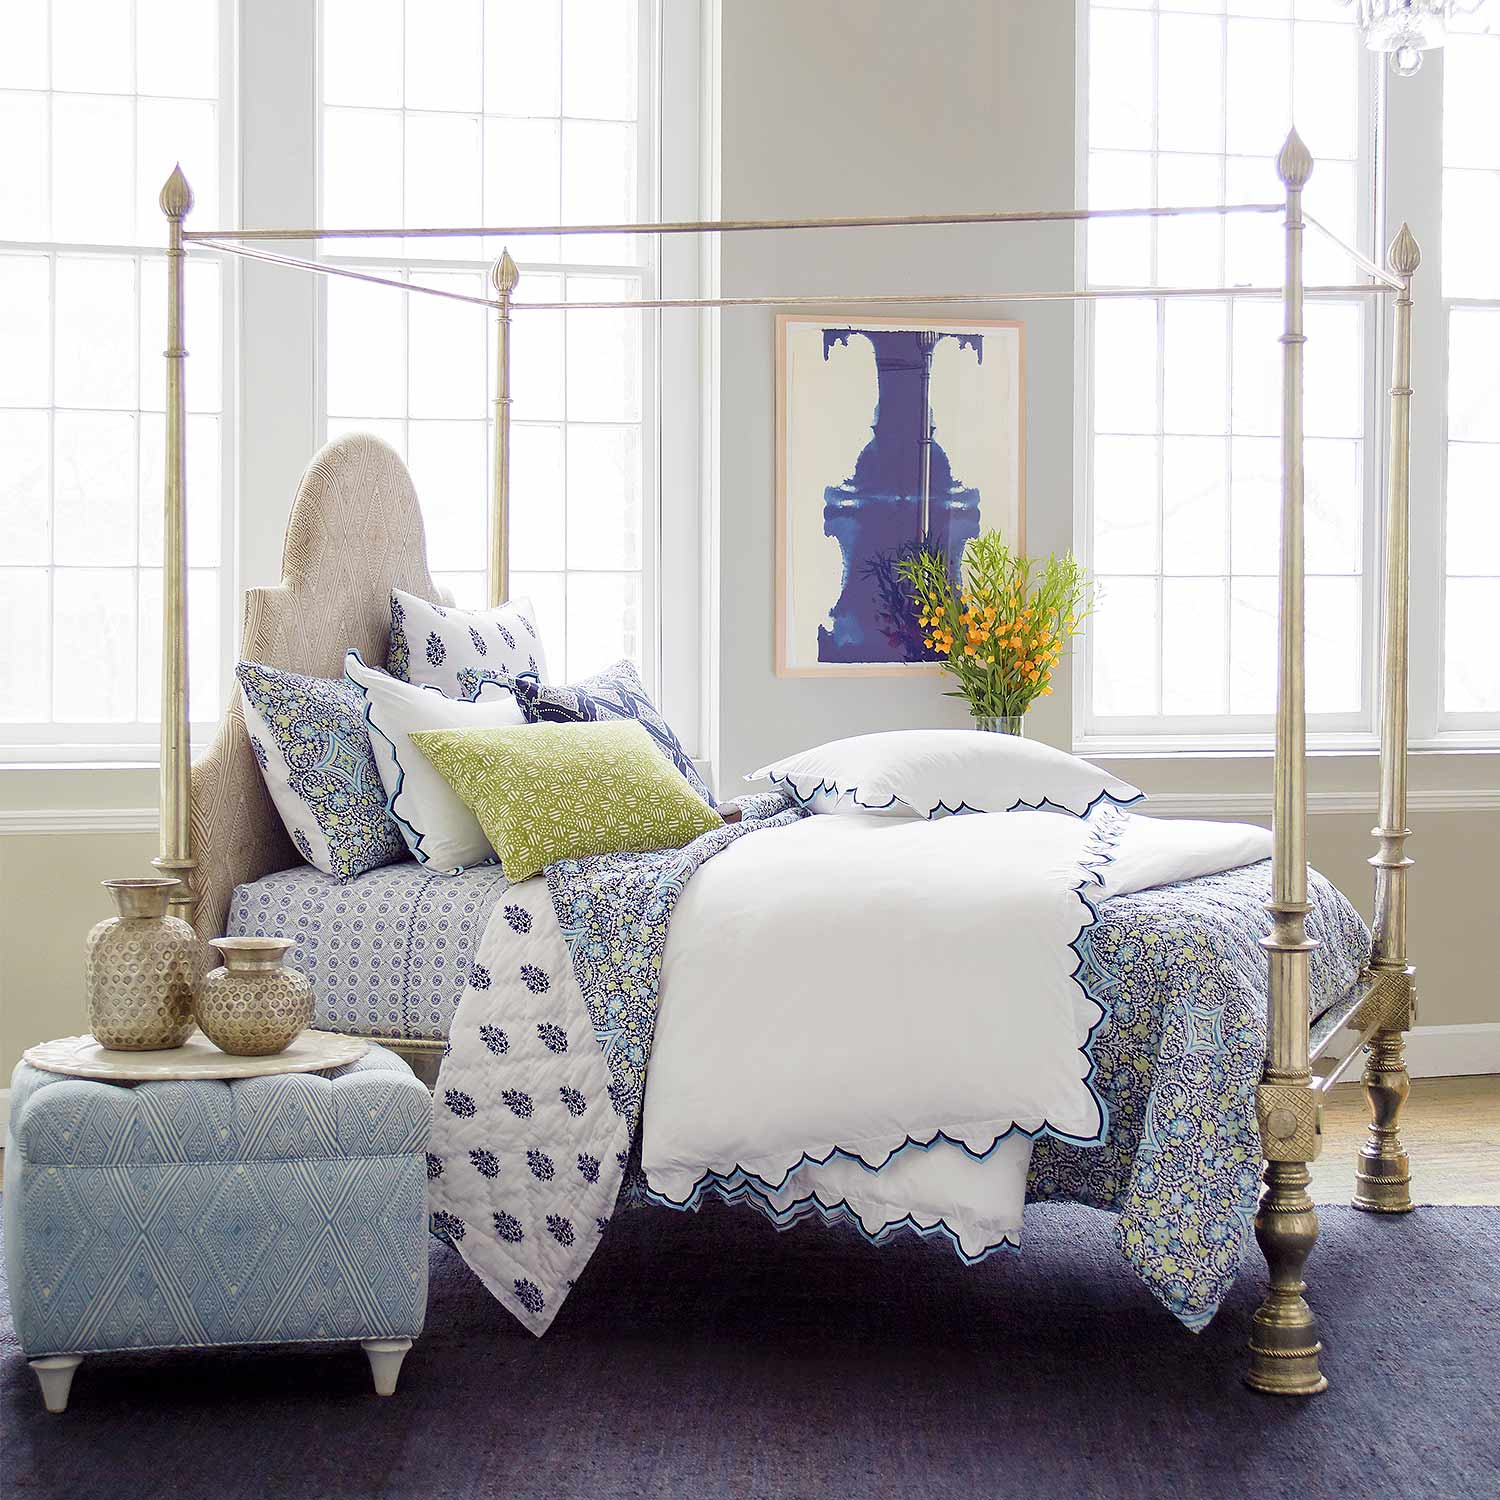 Sakuna Indigo Bed Collection